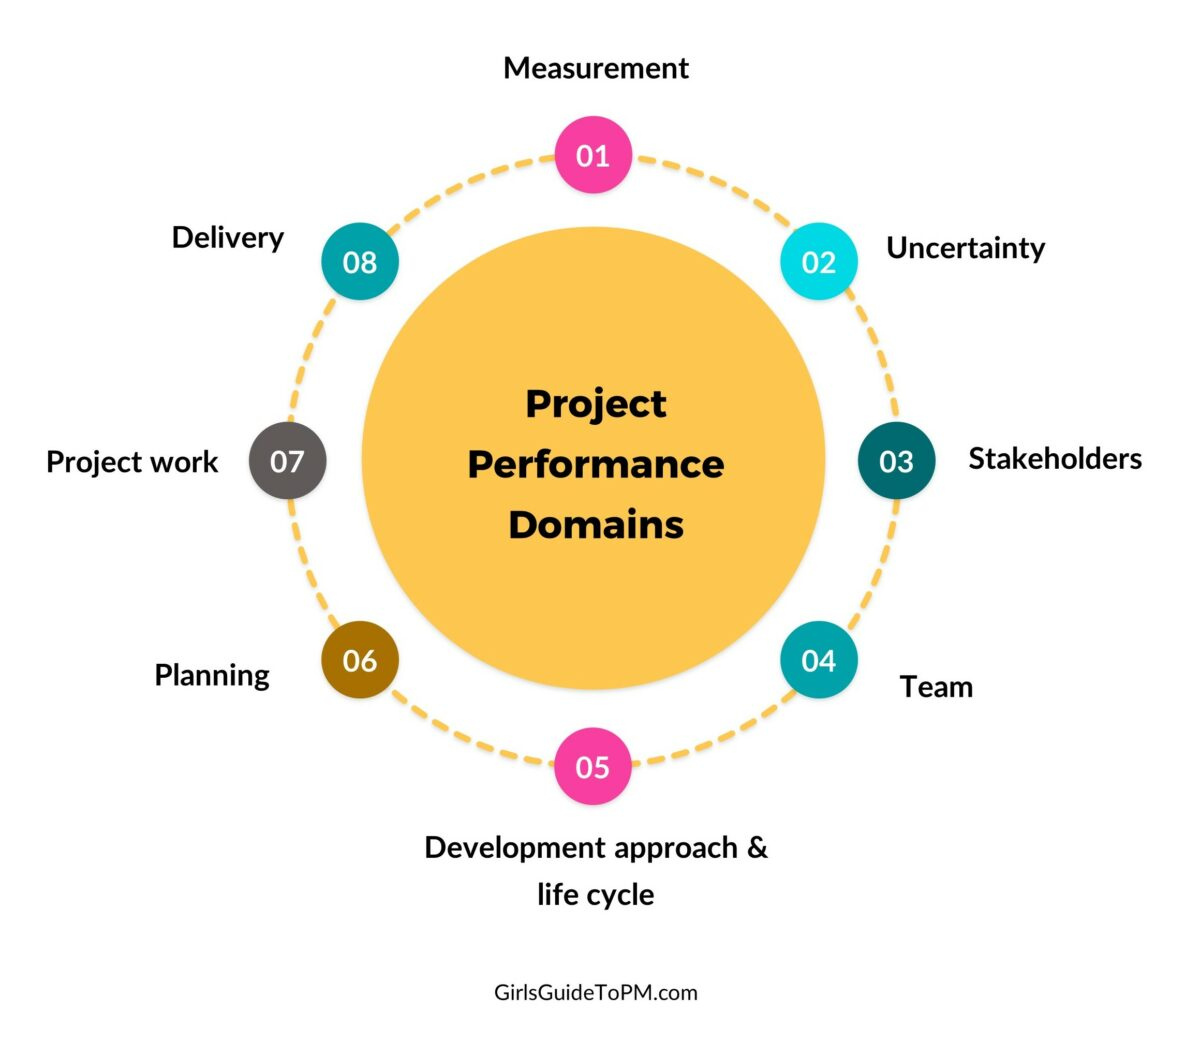 project performance domains